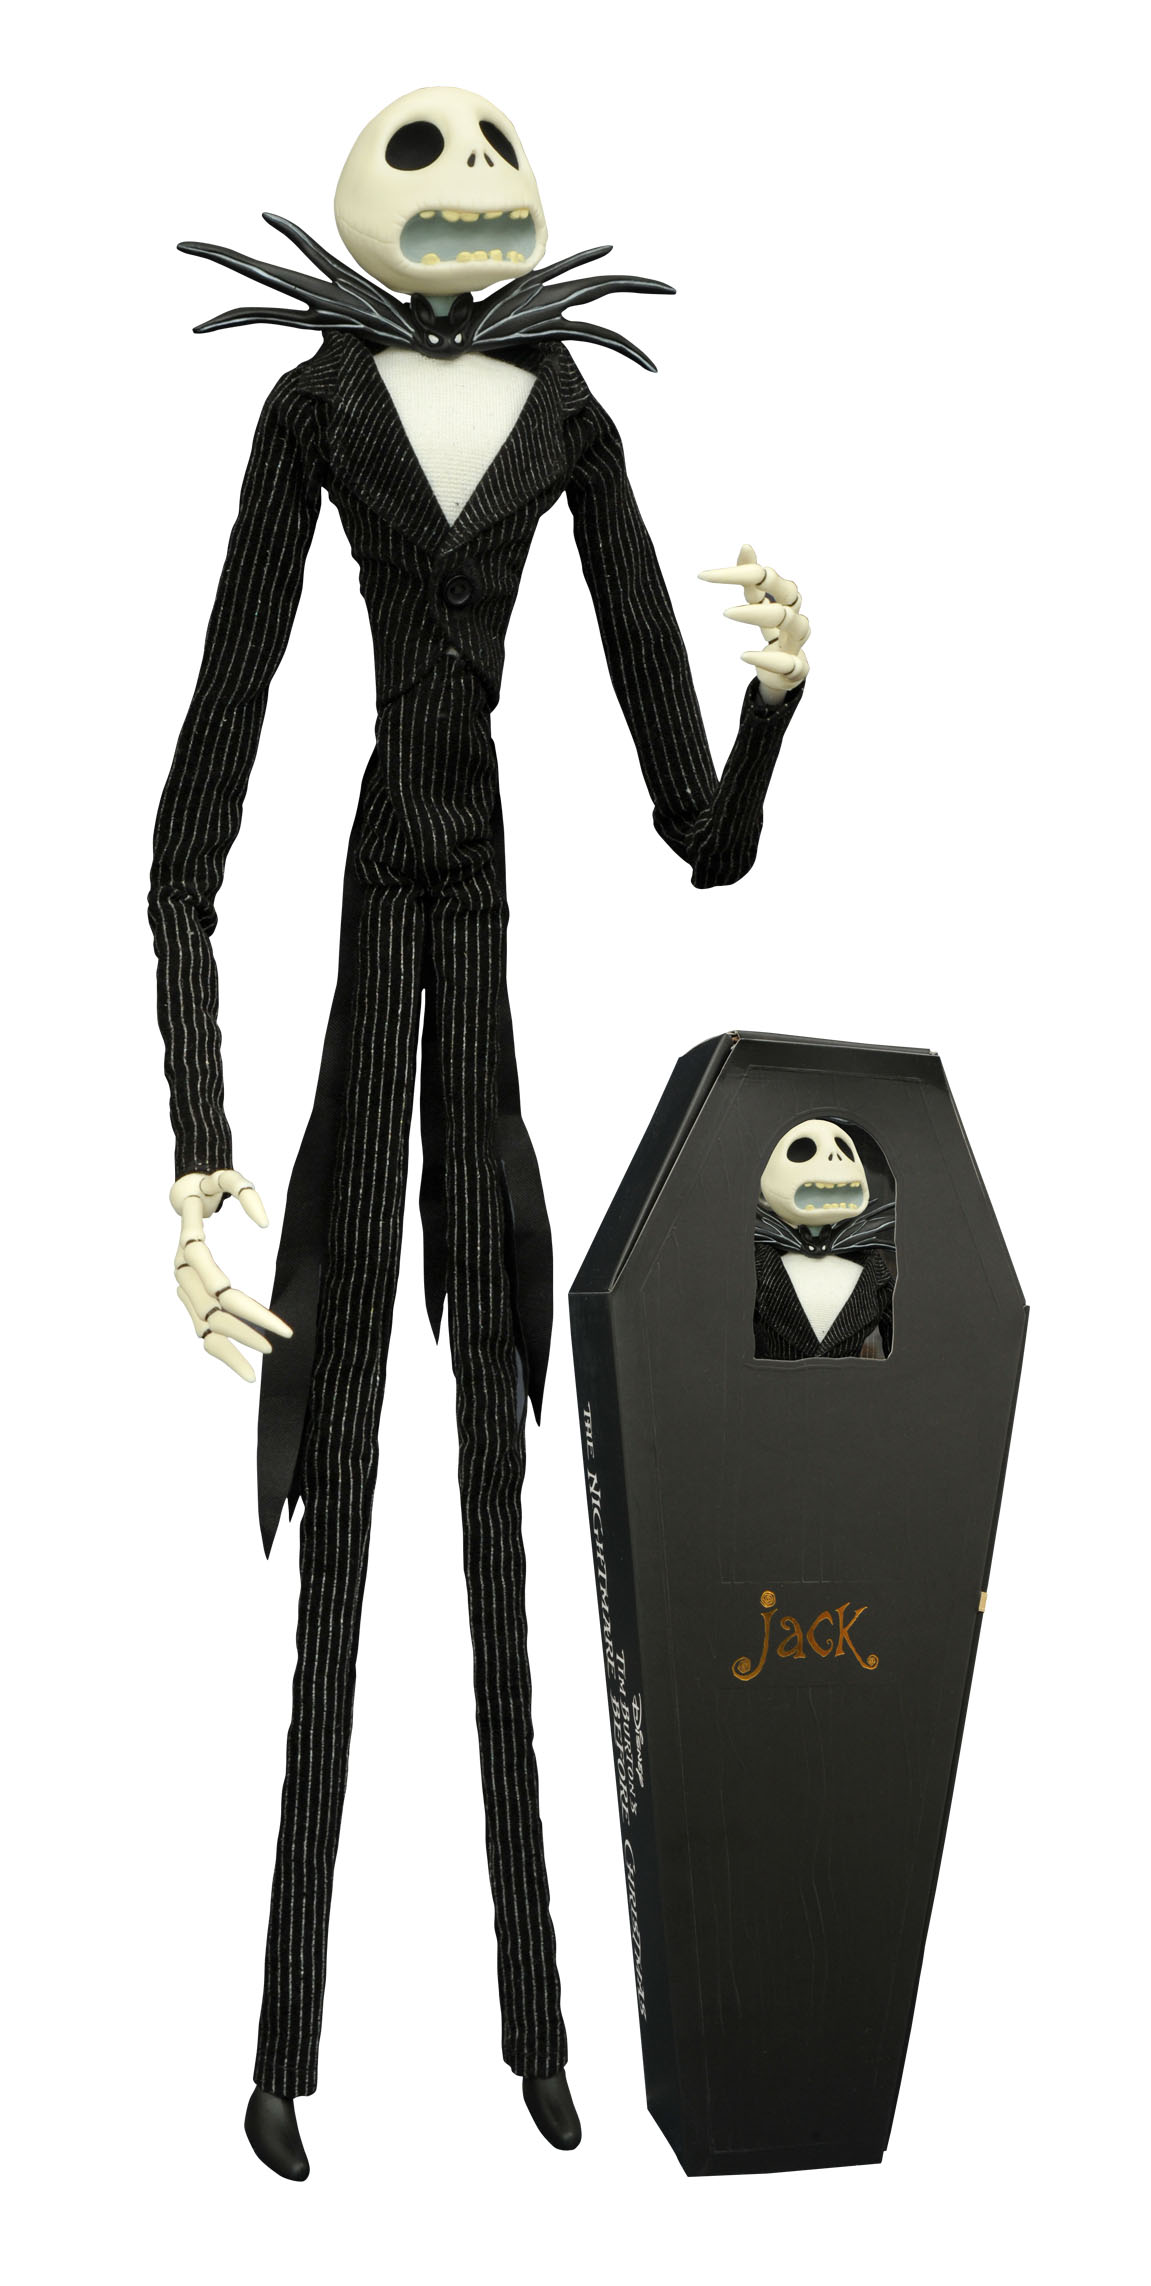 nightmare before christmas chair gaming walmart canada diamond select toys in stores this week batman captain